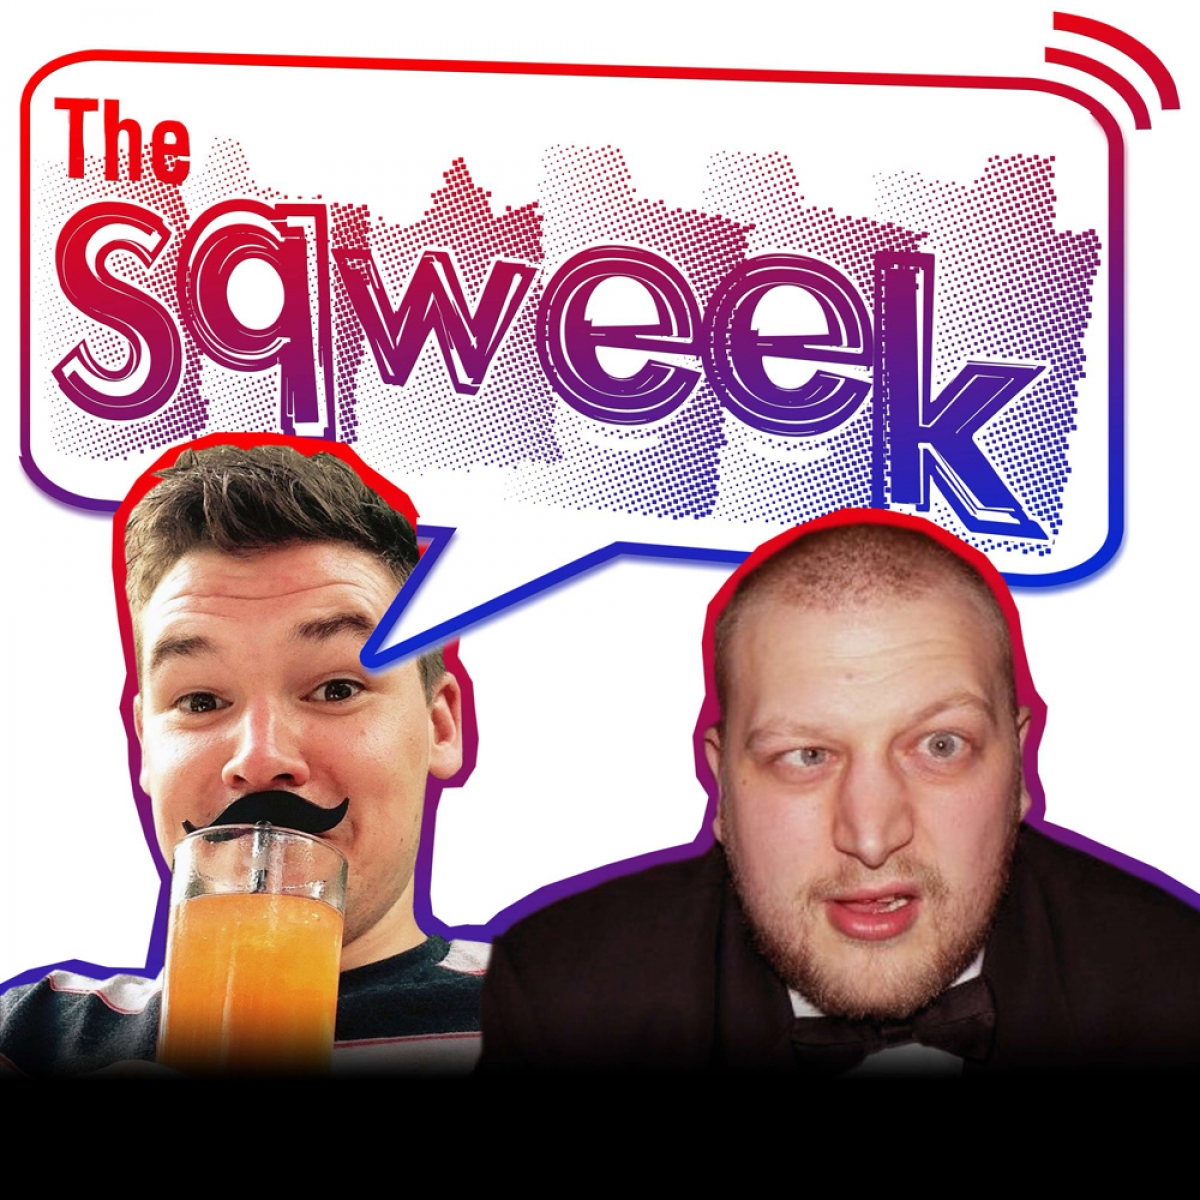 The Sqweek Episode 47: Crazy Clowns, More Trump, Immoral Ched and other ranting!